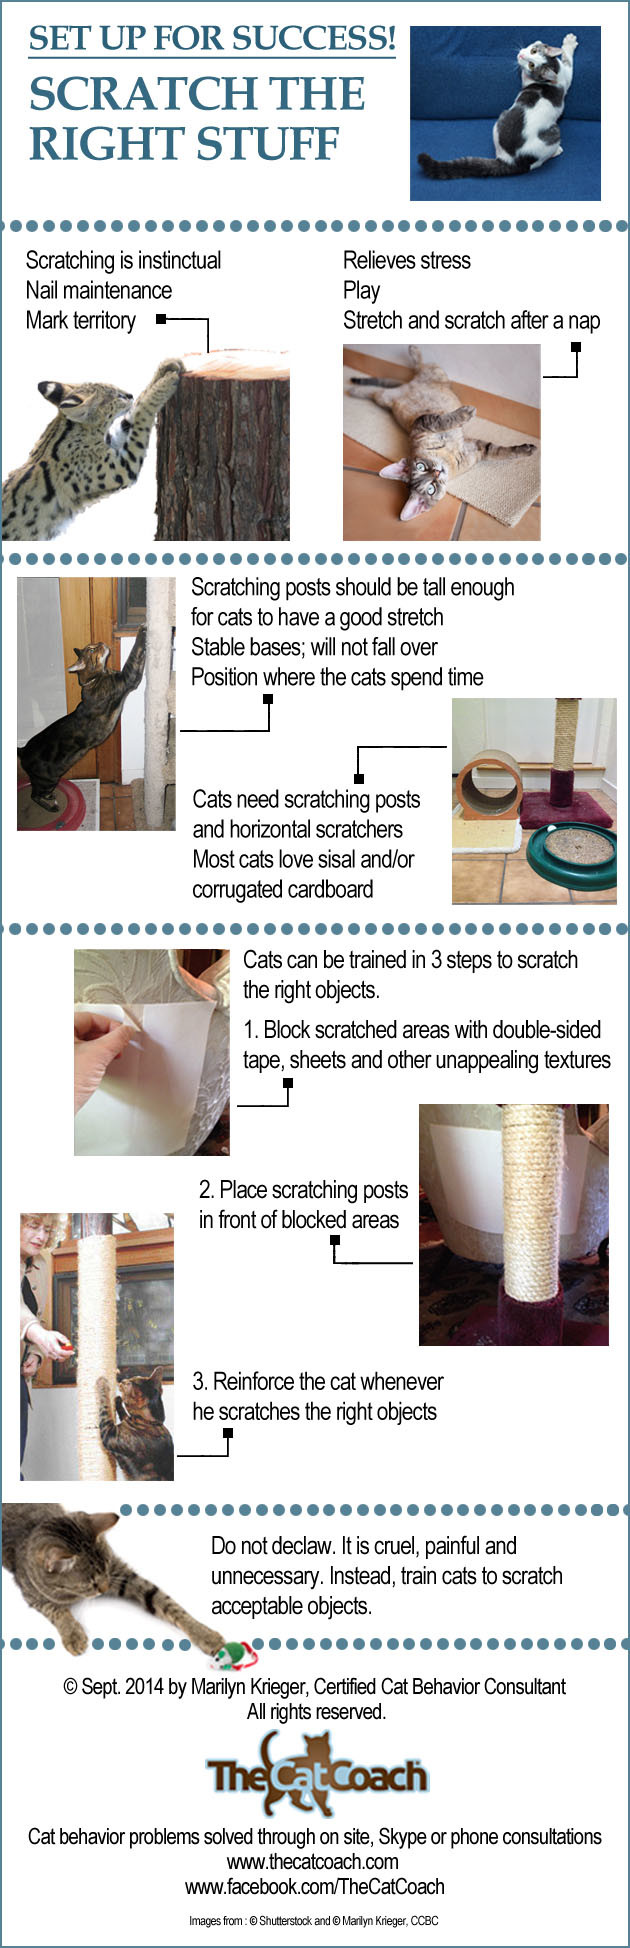 Cats can be trained to scratch the right furniture by Marilyn Krieger, CCBC